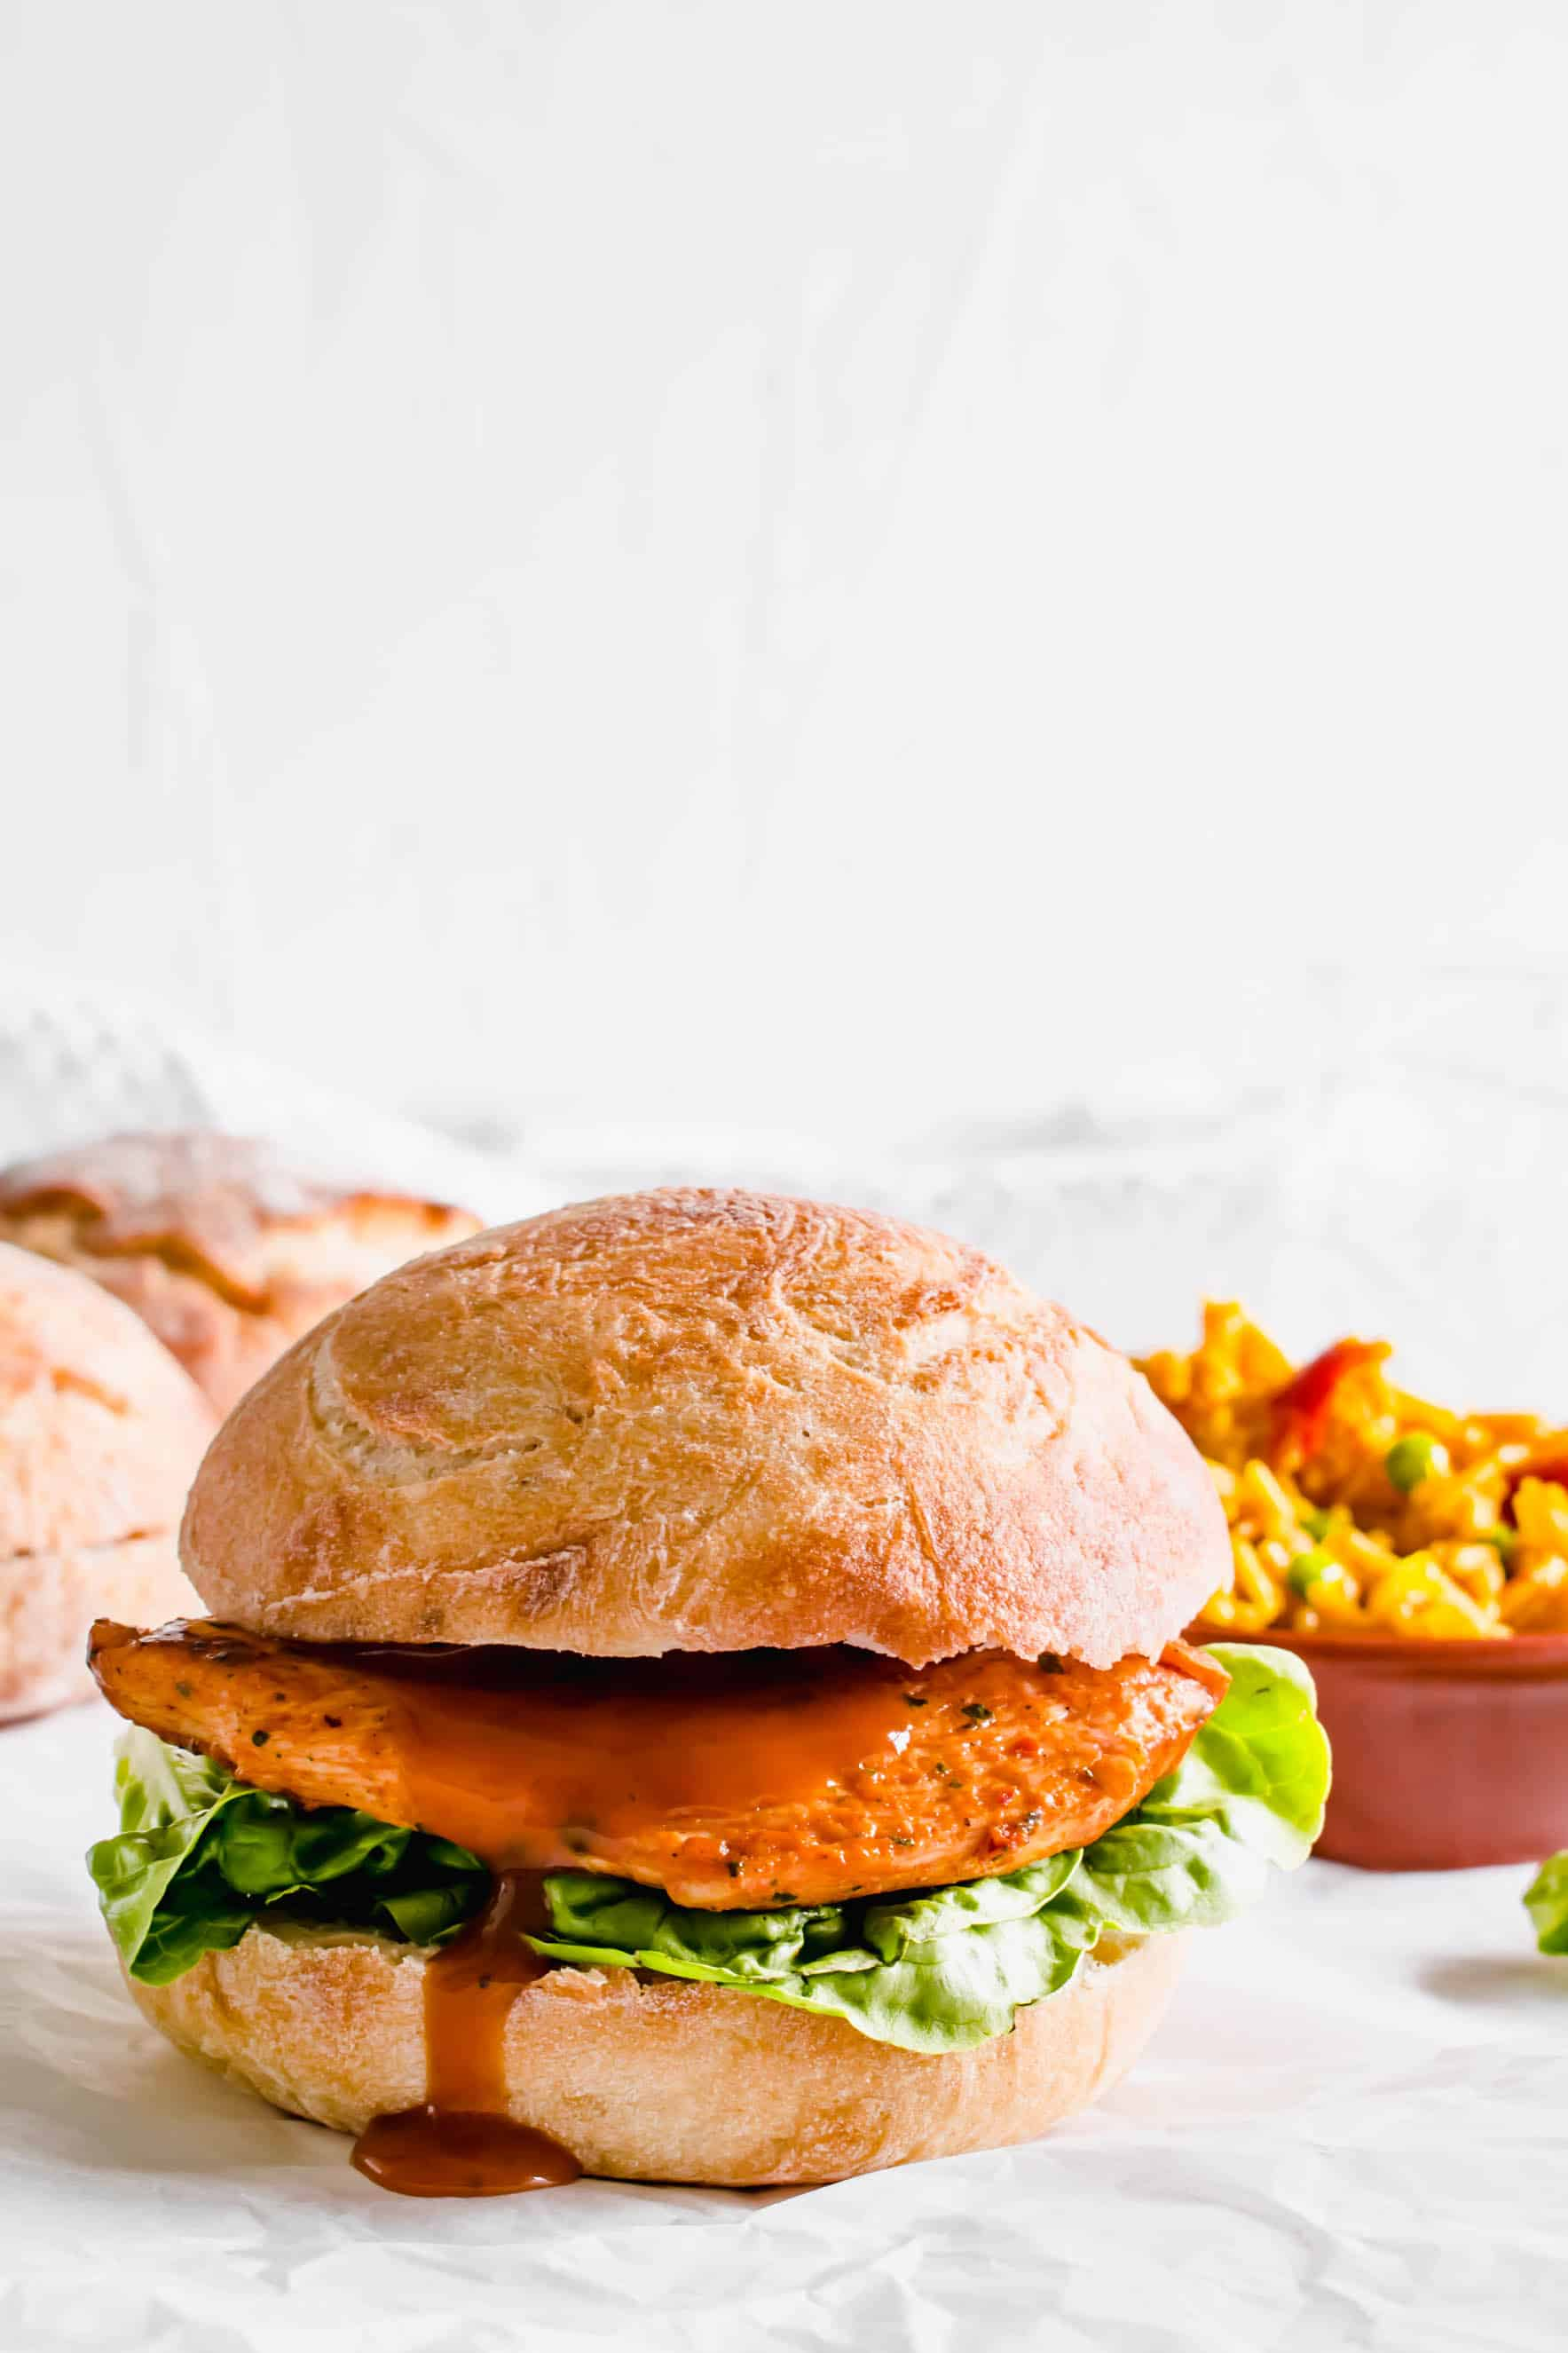 Nandos Chicken Burger Recipe